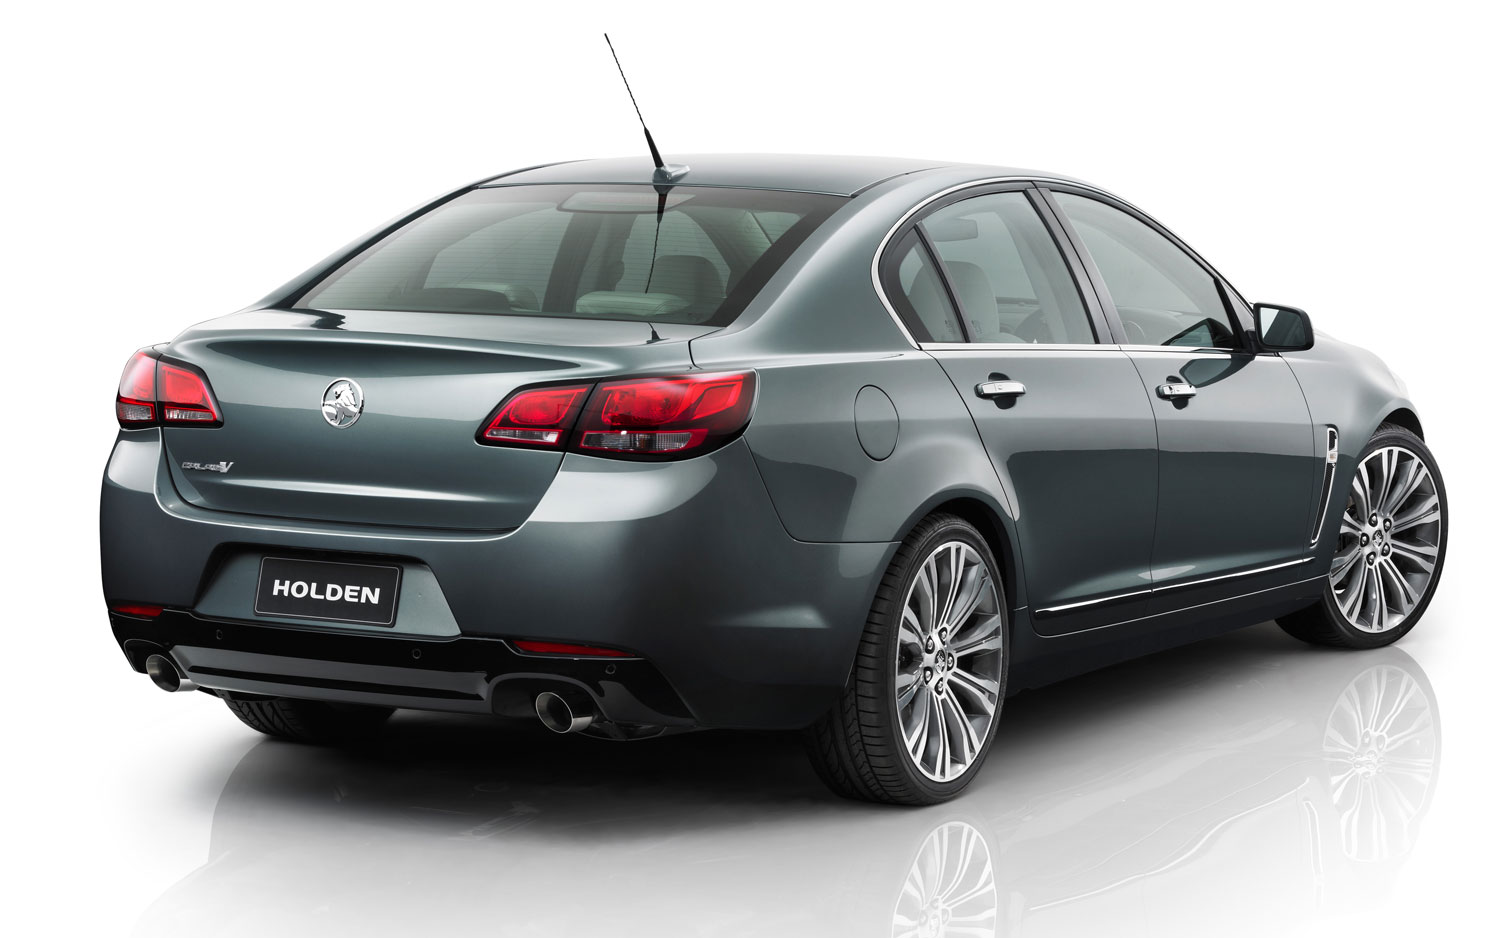 New Holden Vf Commodore Officially Revealed Best Look Yet At